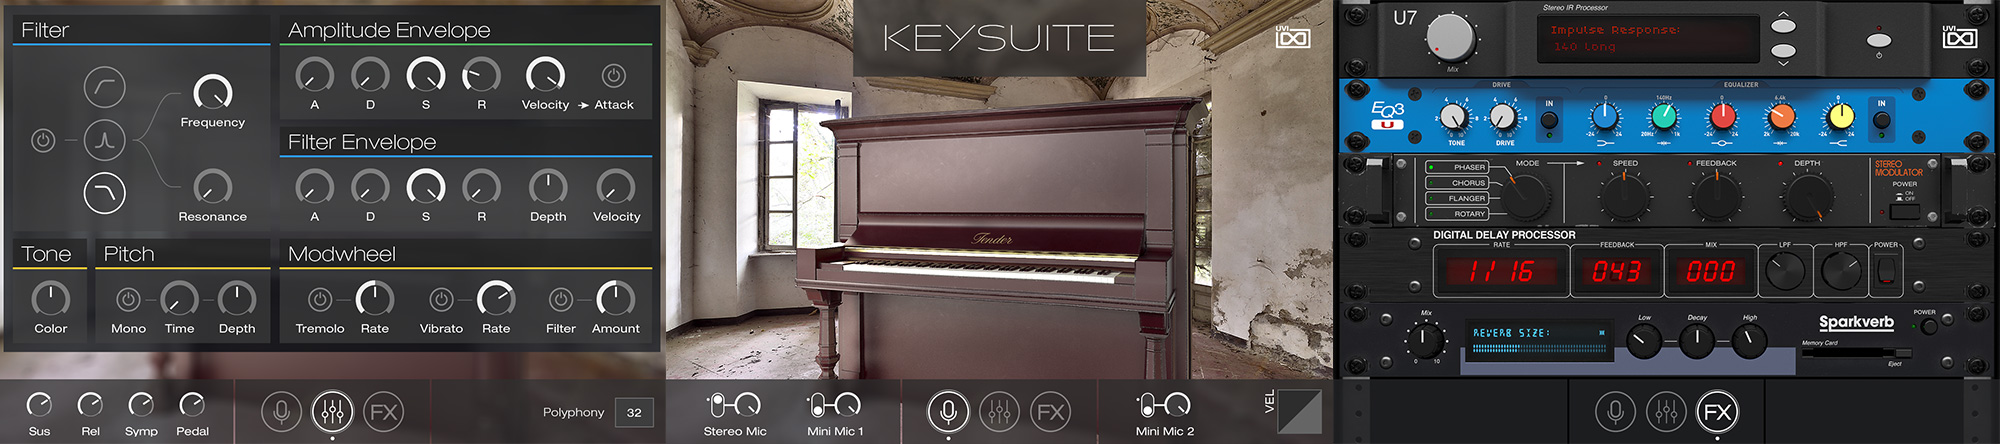 UVI Key Suite Acoustic | Pages